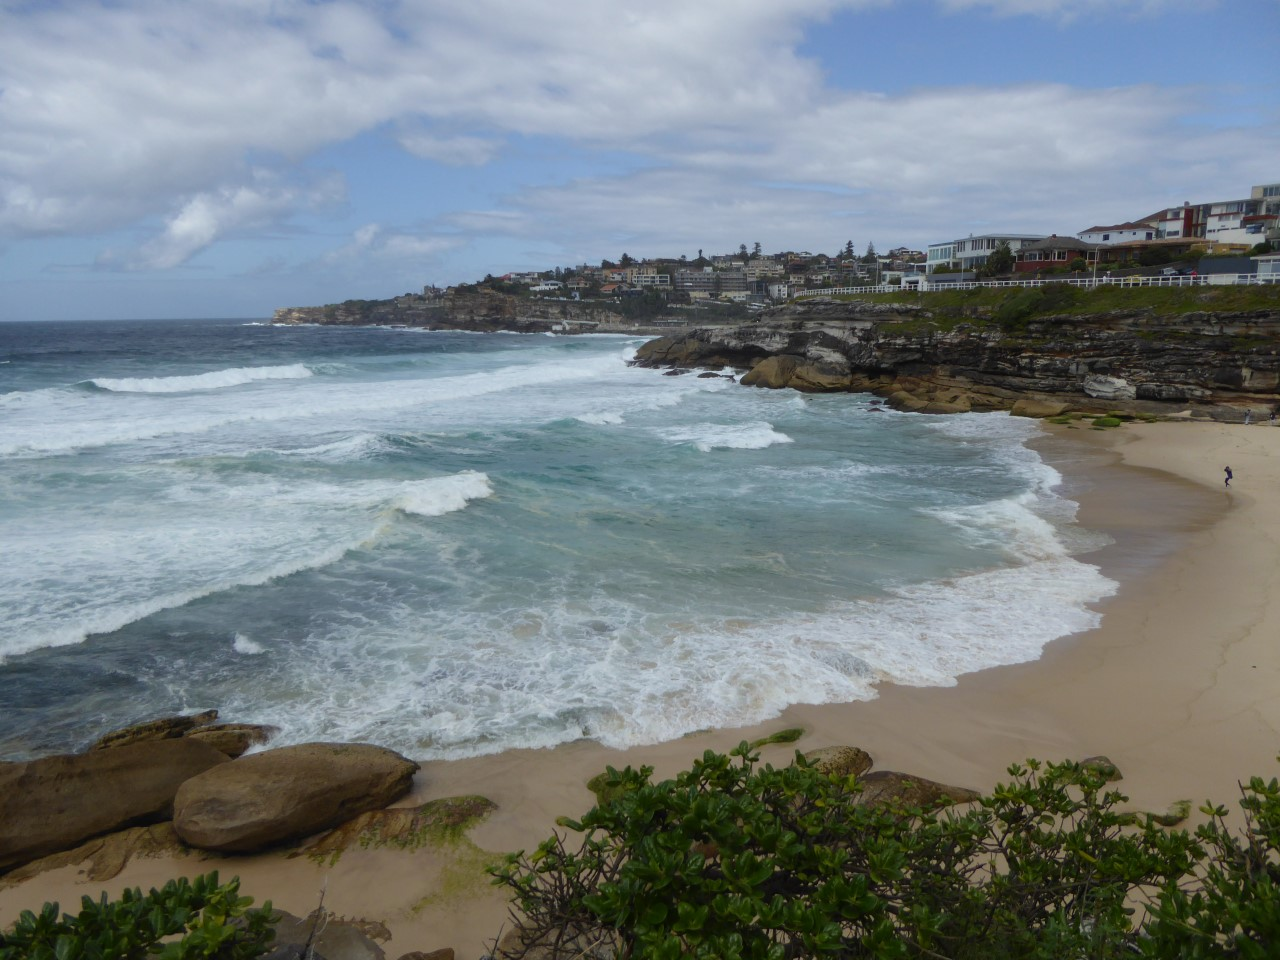 Bondi to Bronte beach coastal walk